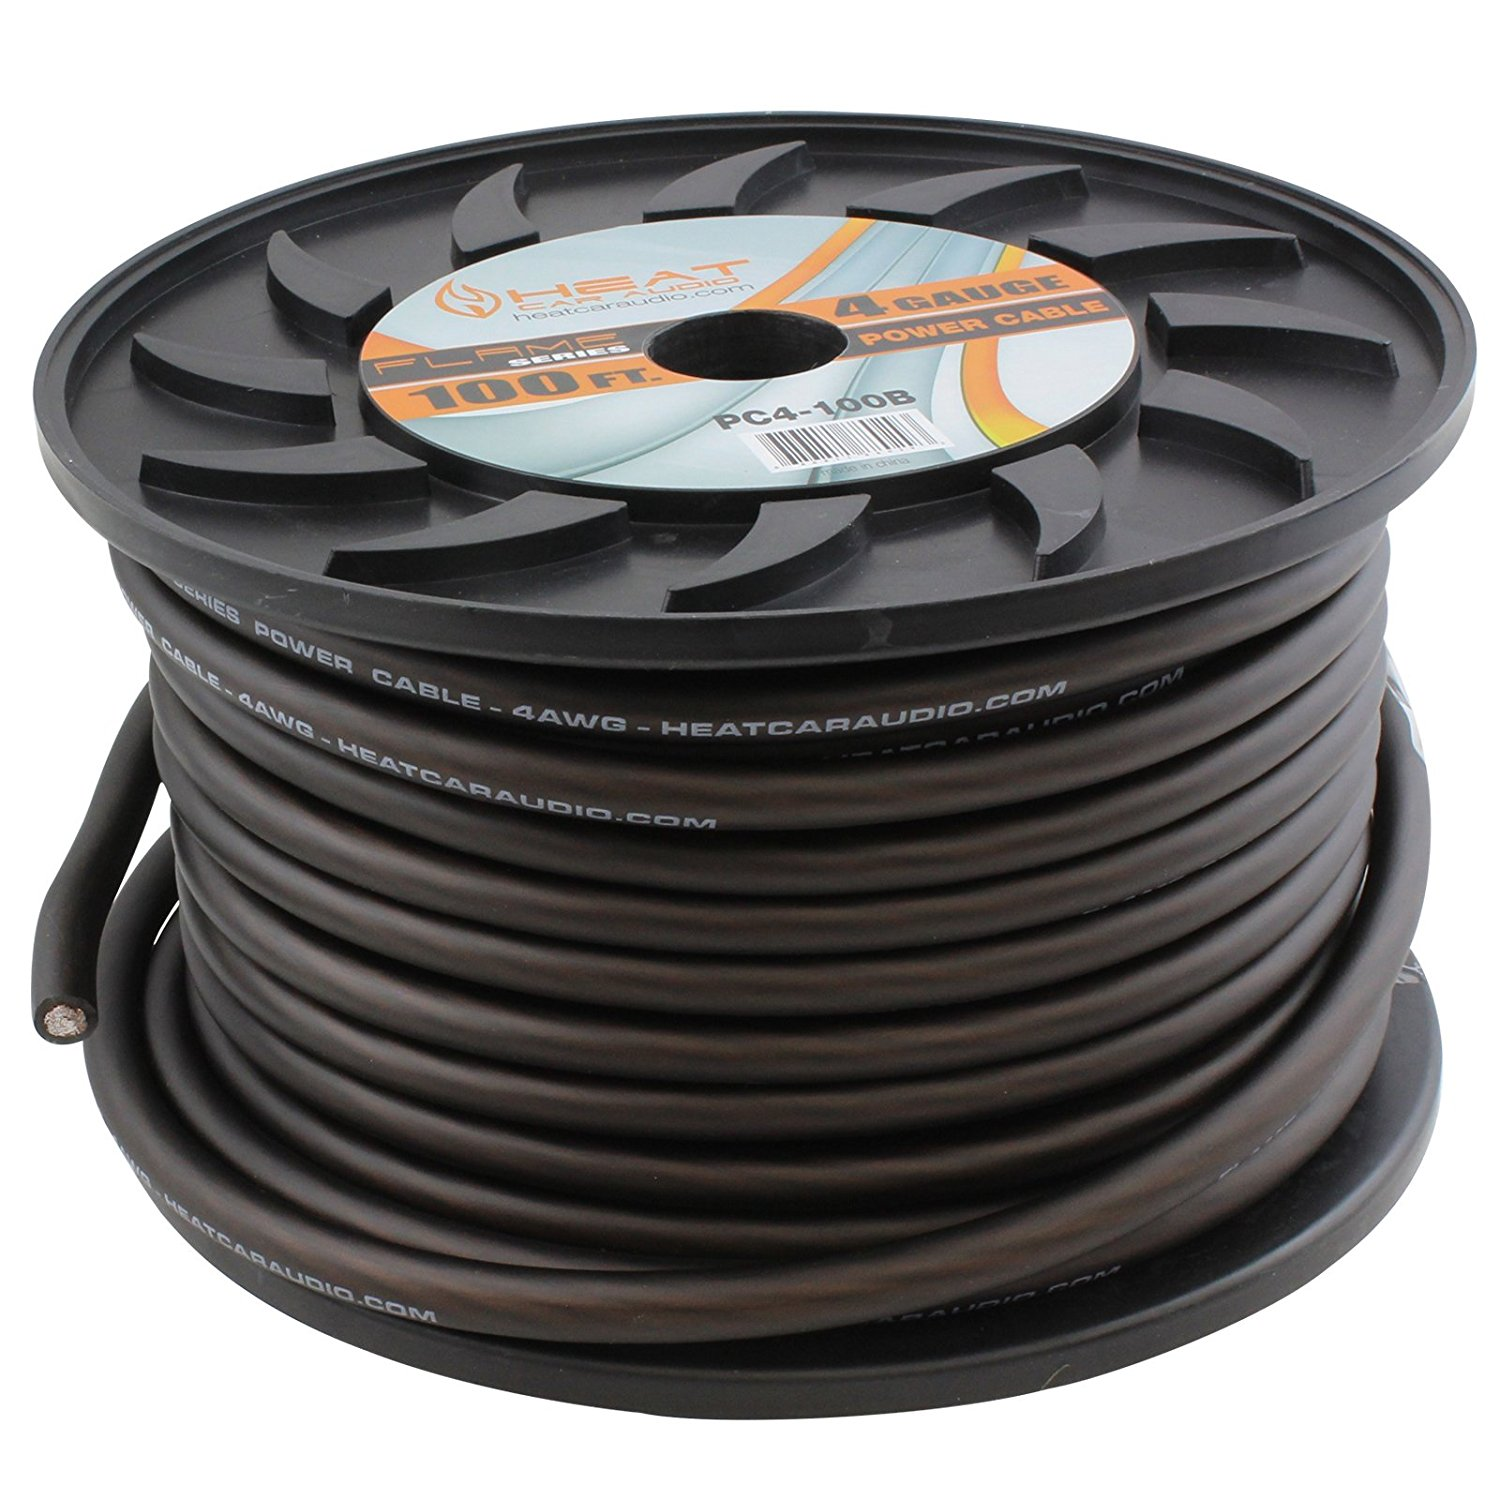 Cheap 4 Awg Ground Wire, find 4 Awg Ground Wire deals on line at ...